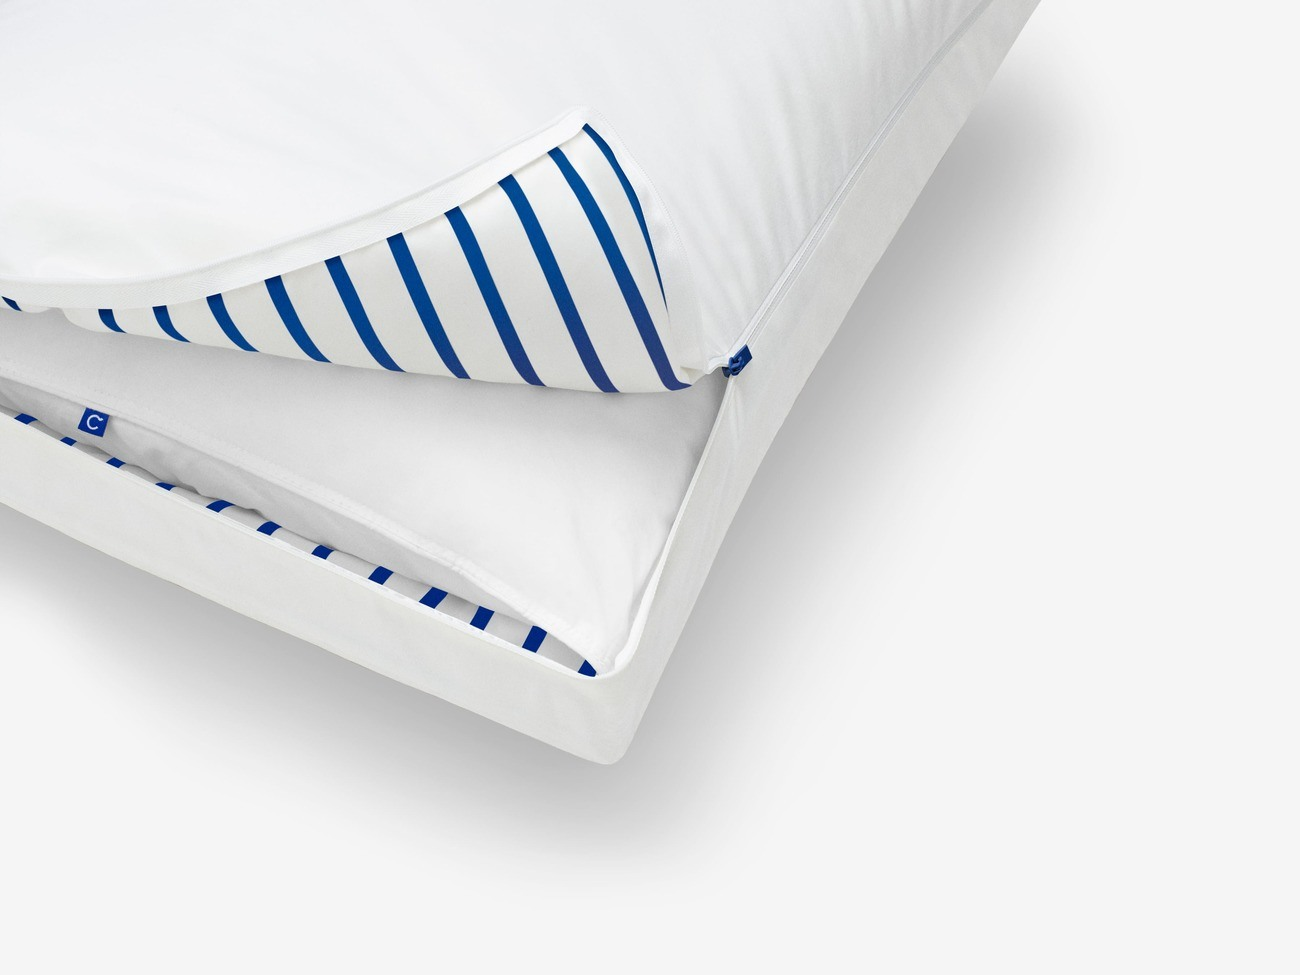 The Casper Dual Layer Pillow